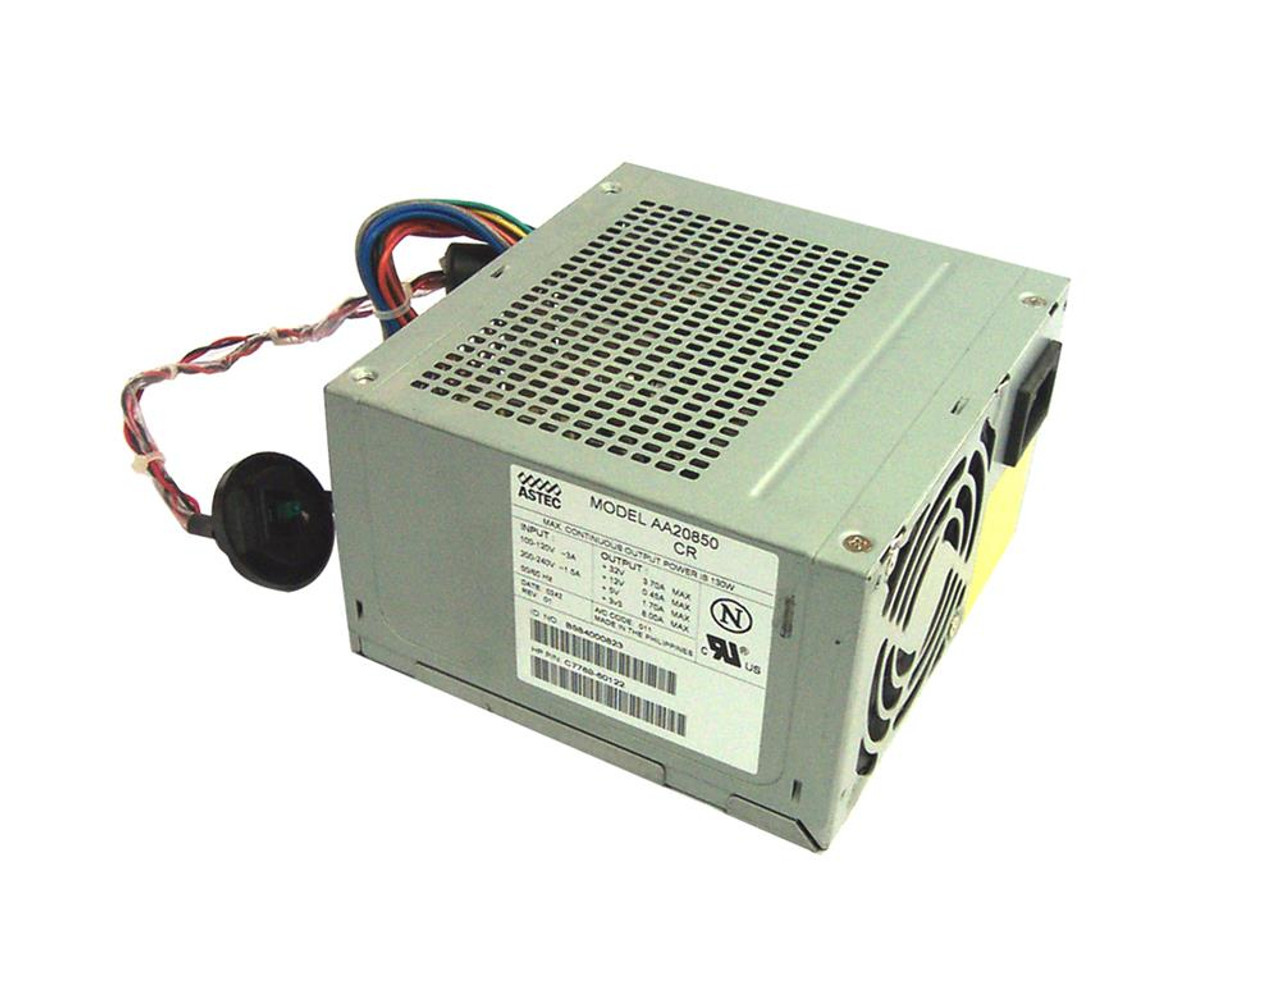 Power Supply Unit (CH336-60020 ) for HP DesignJet 510